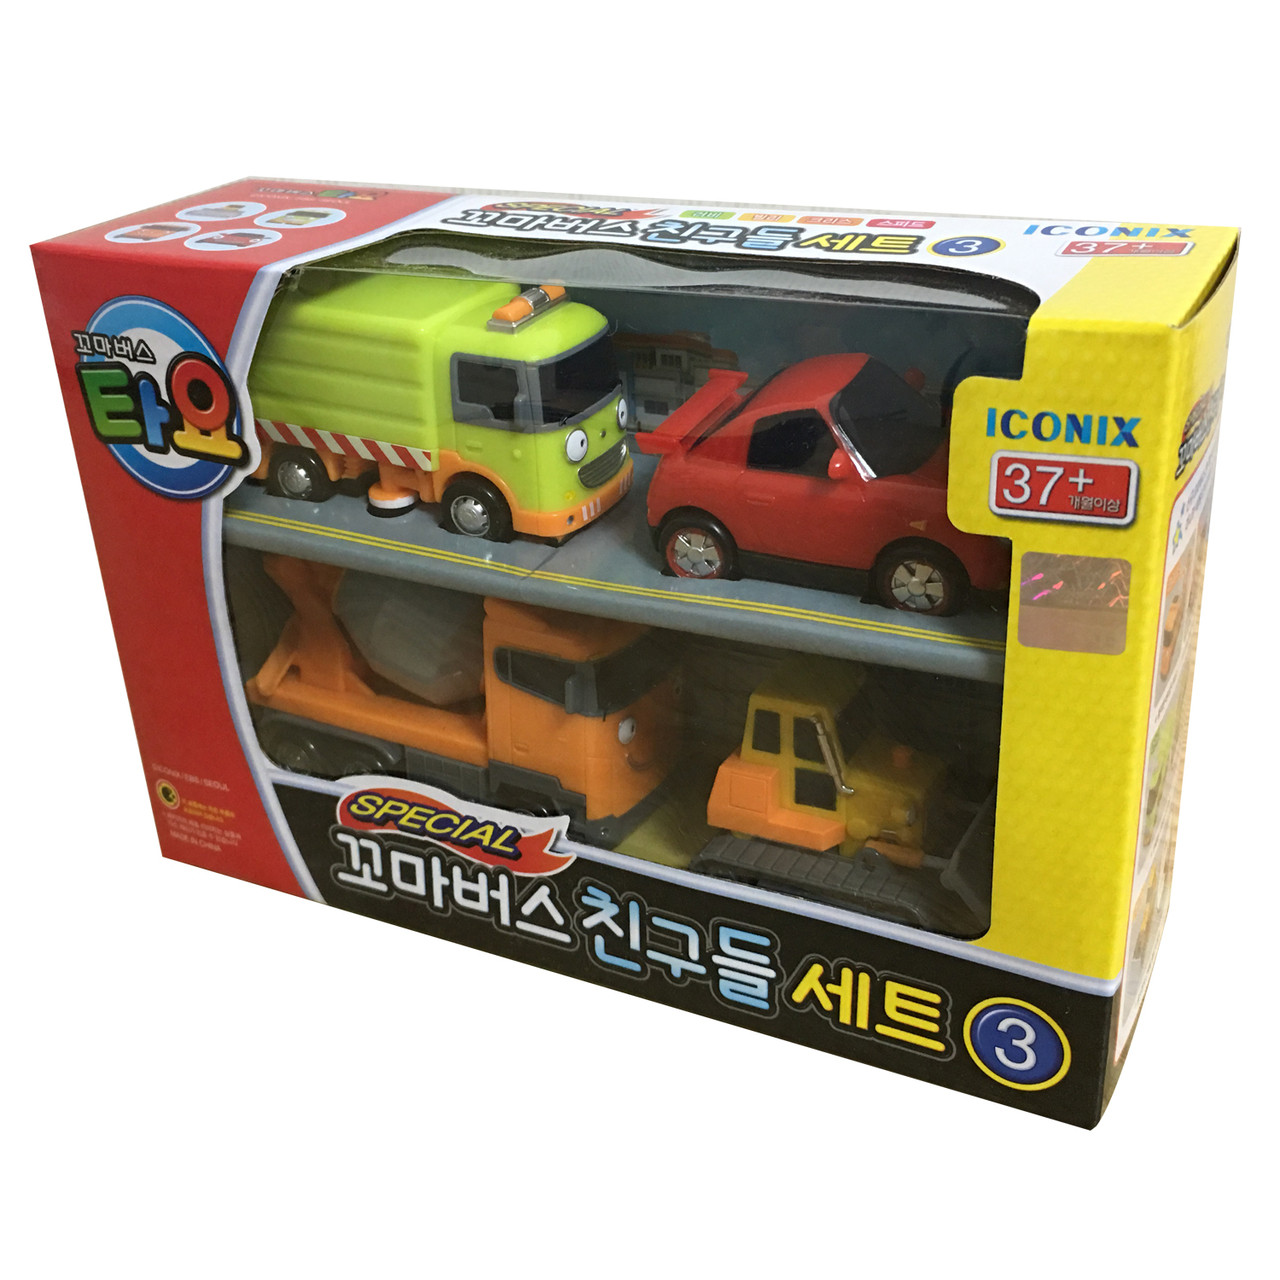 the little bus tayo friends special edition no 3 mini 4 pcs toy set